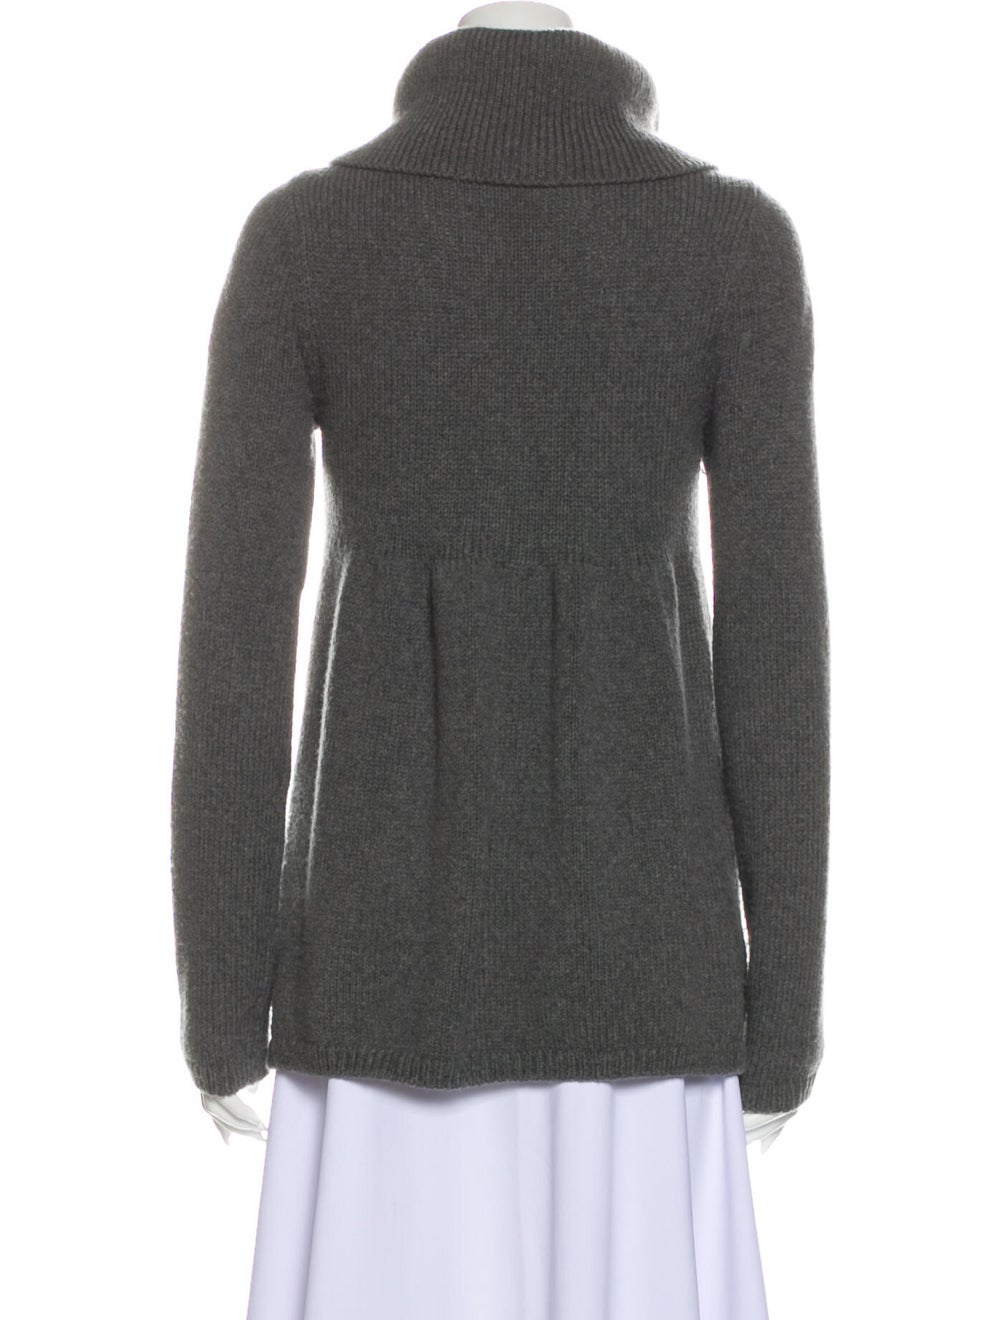 Vince Wool Turtleneck Sweater Wool - image 3